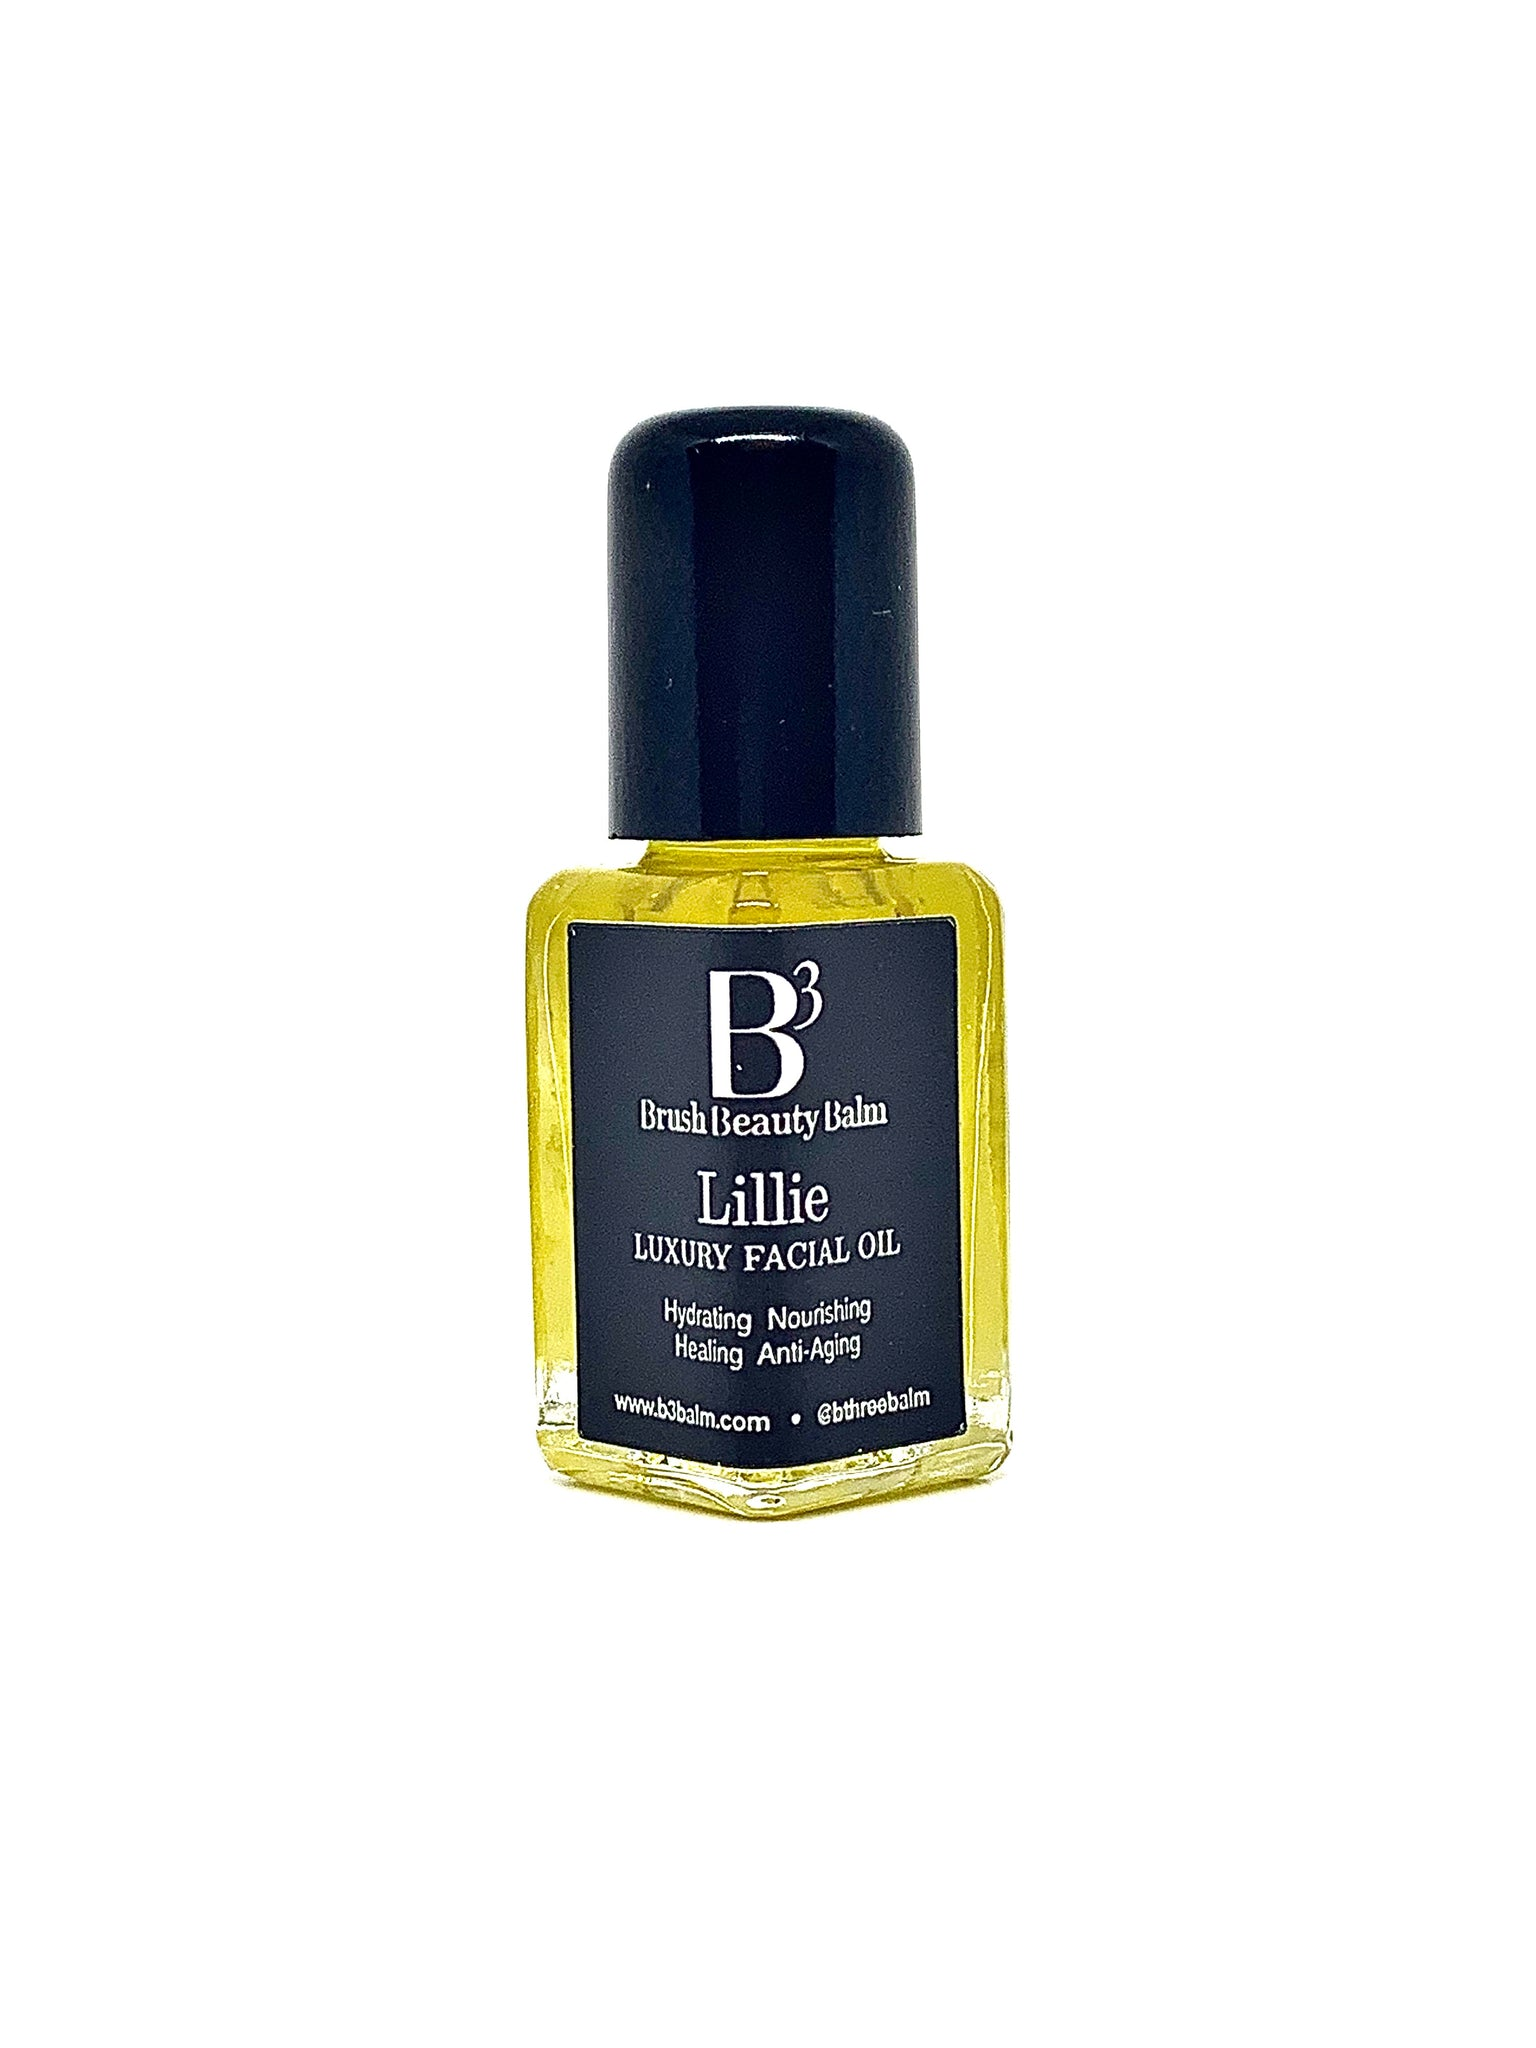 LILLIE LUXURY FACIAL OIL